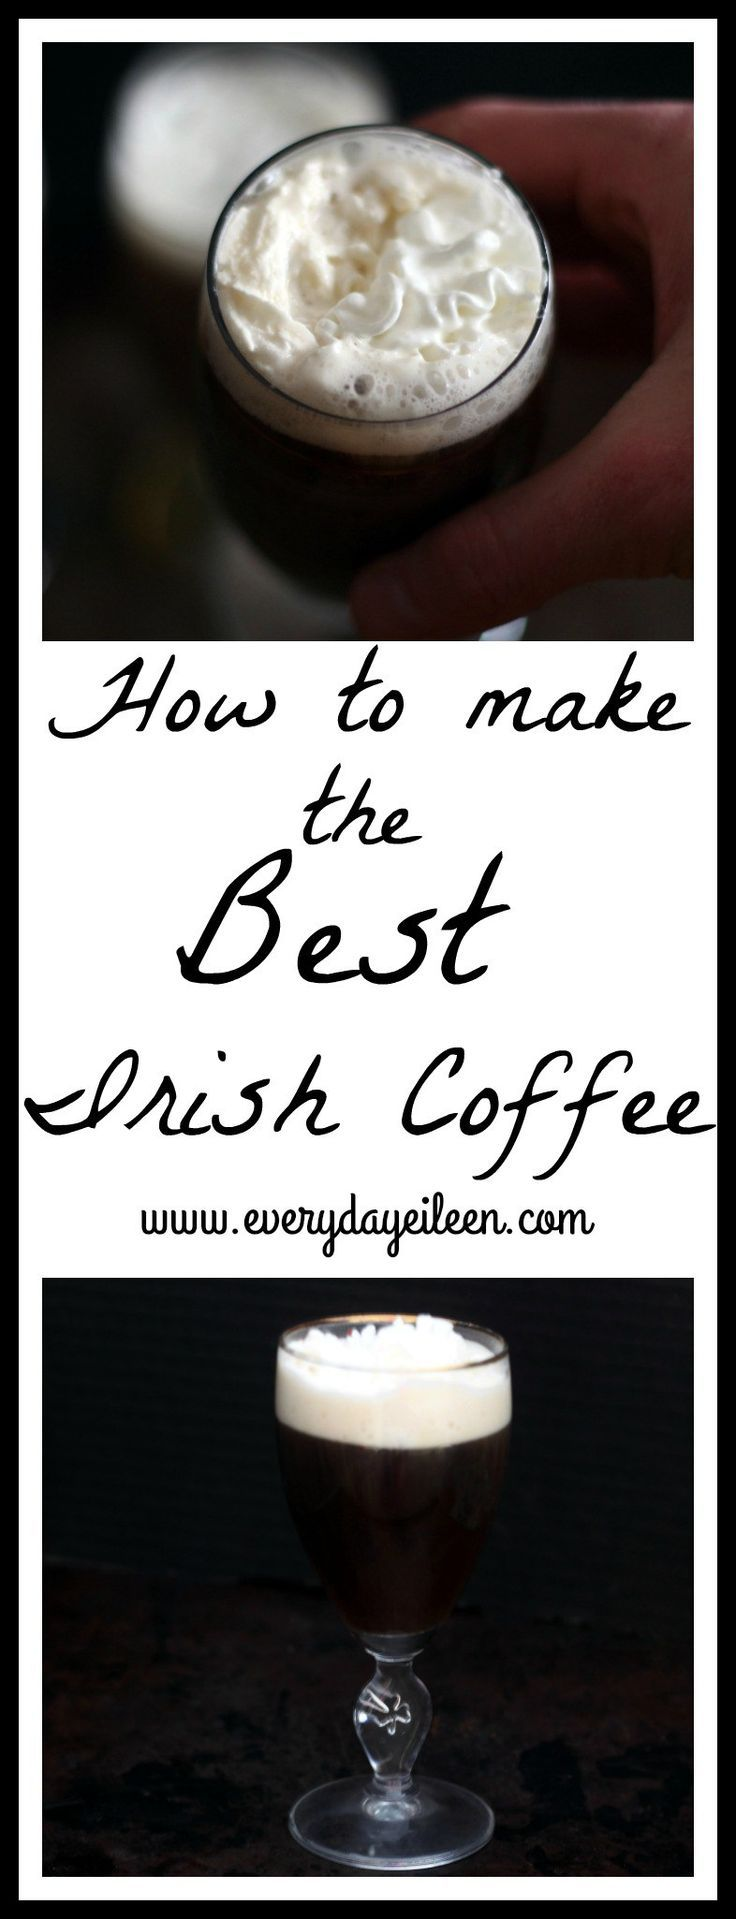 Get The Easy Instructions To Make The Best Irish Coffee At Home